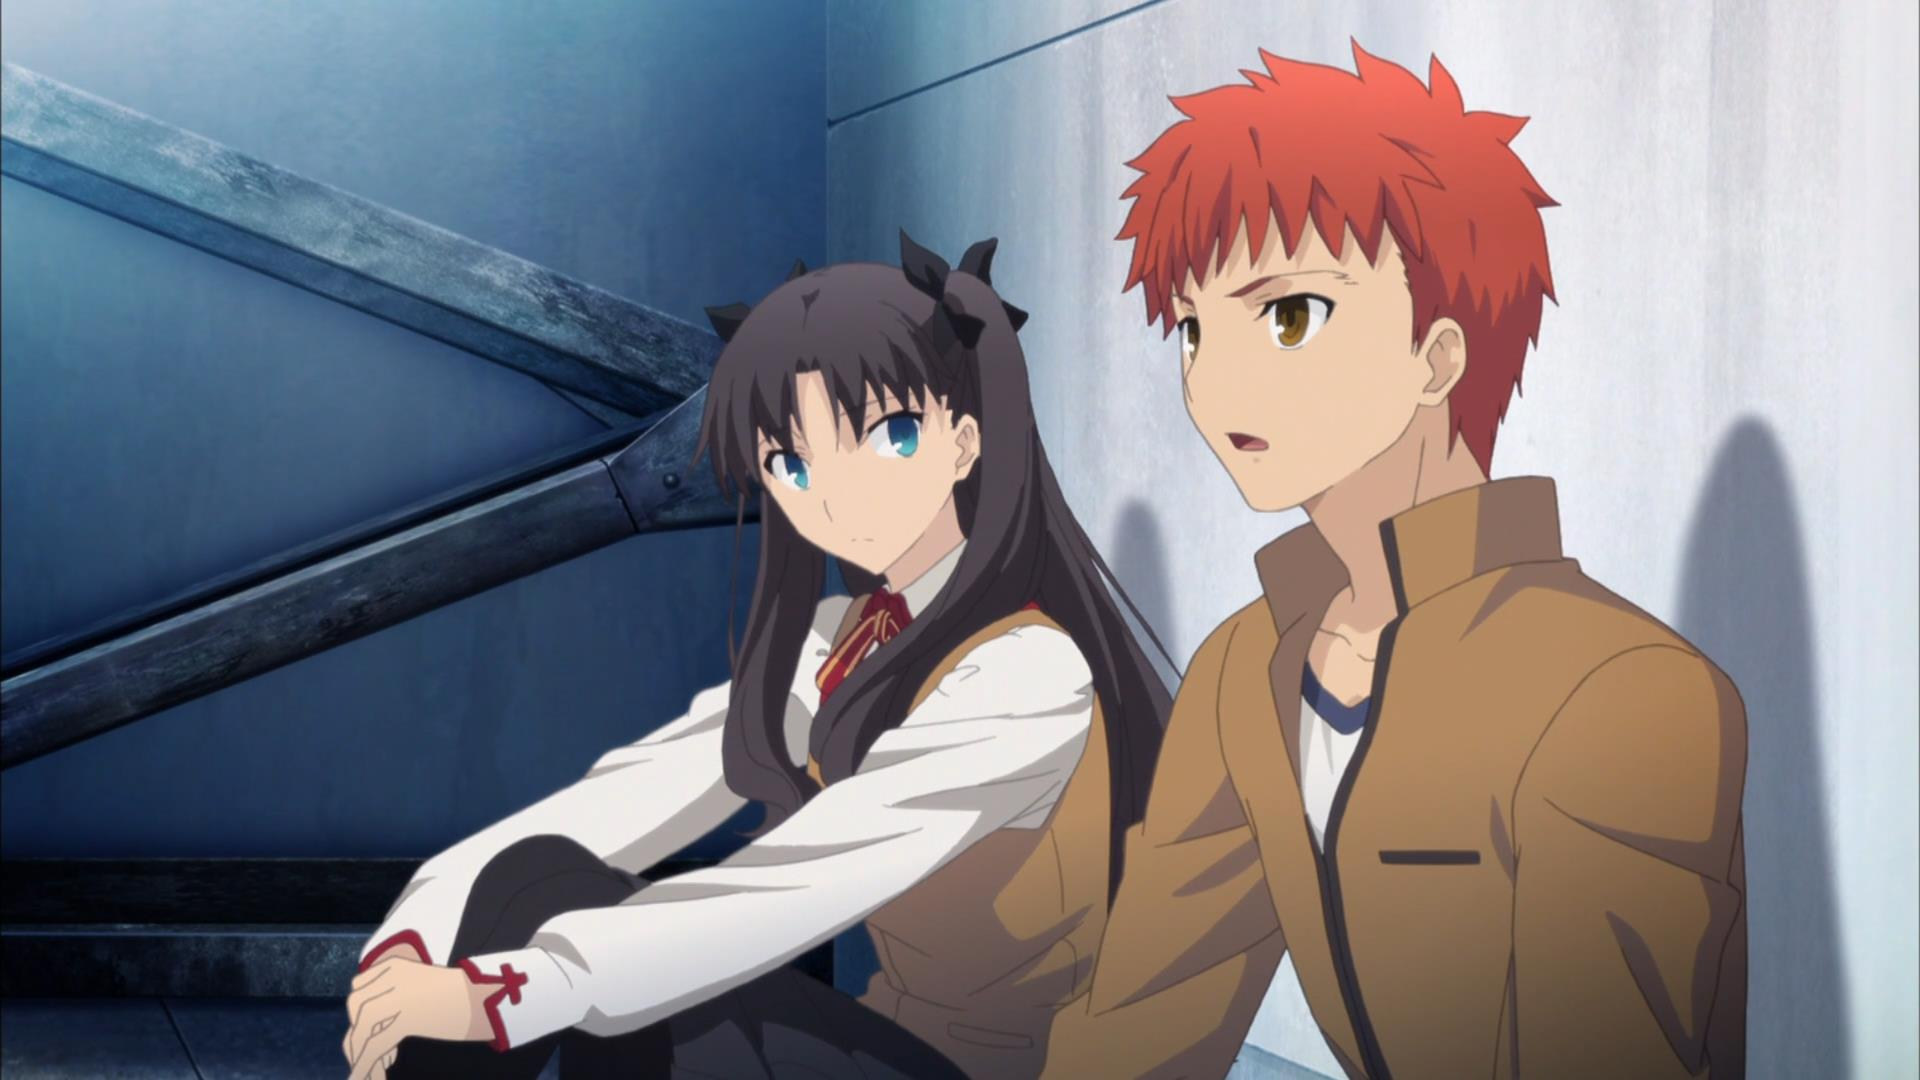 Musings on Fate Stay Night Unlimited Blade Works (TV series